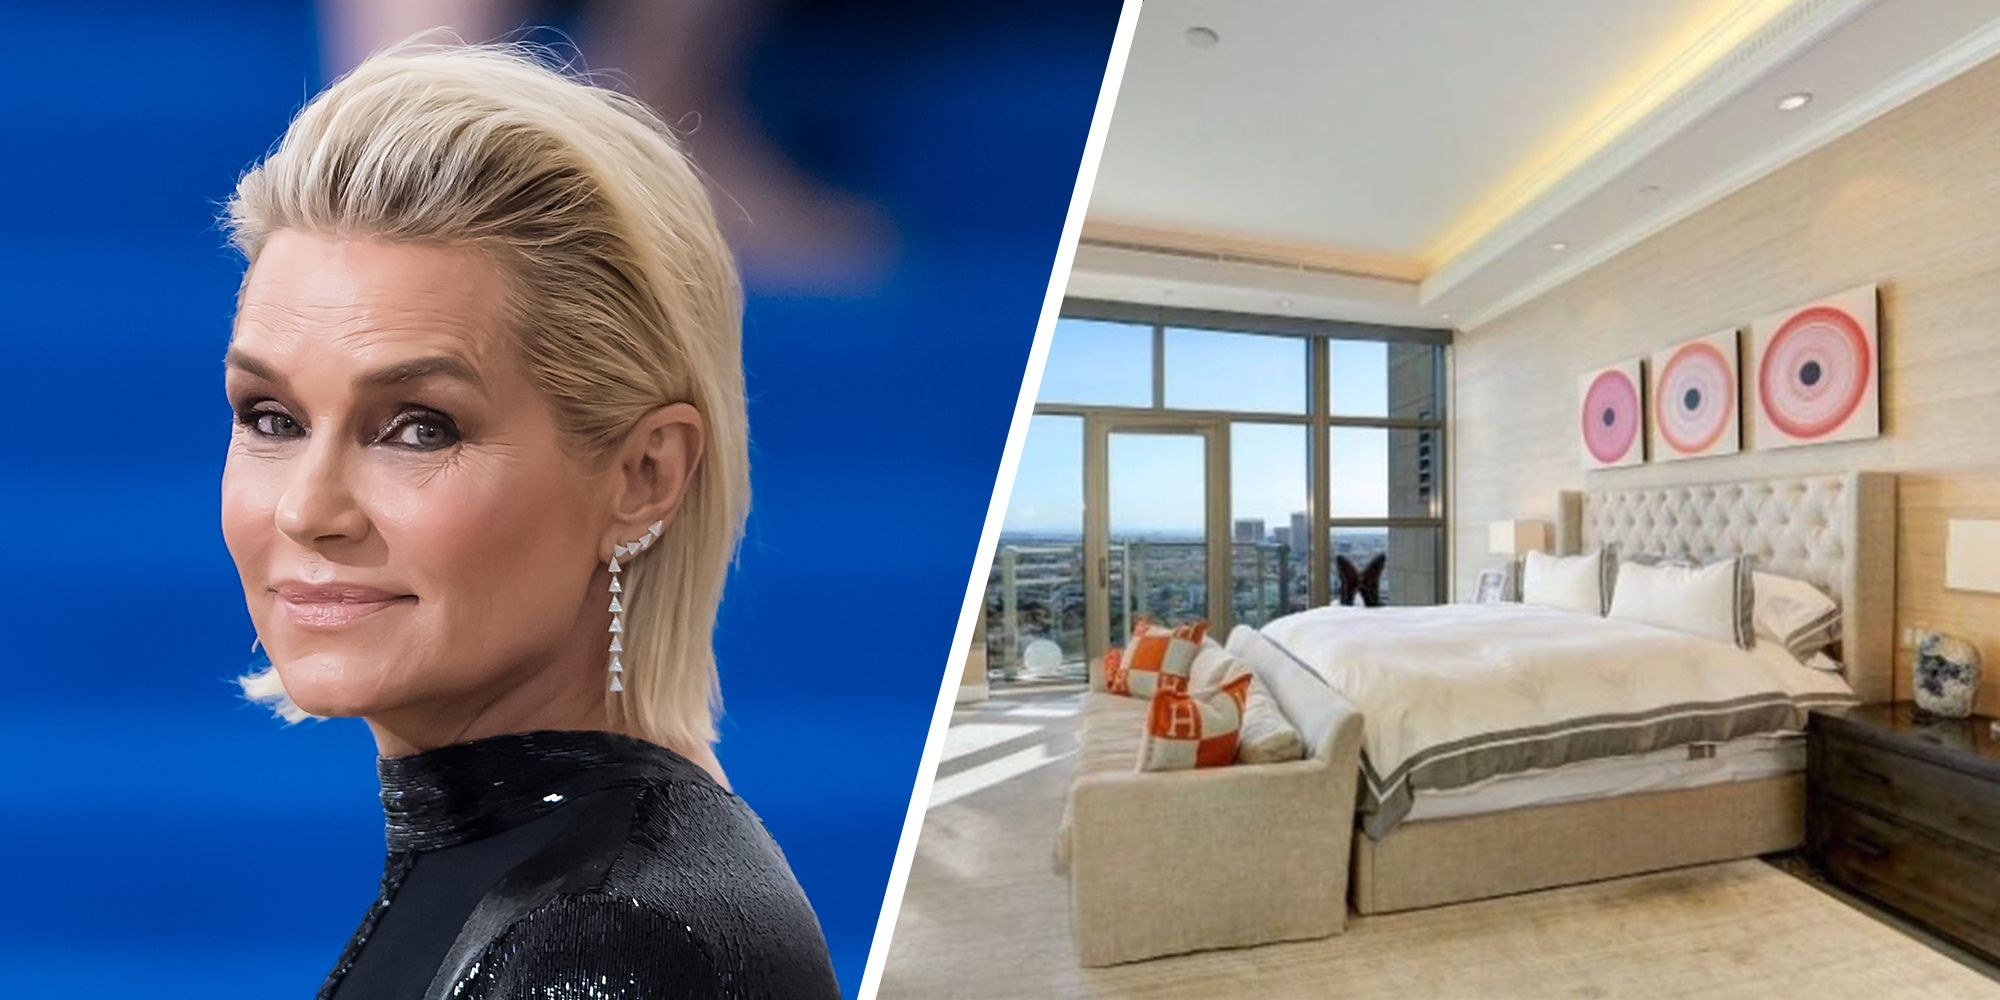 Real Housewives Of Beverly Hills Star Yolanda Hadid Is Selling Her LA Home For 5 Million